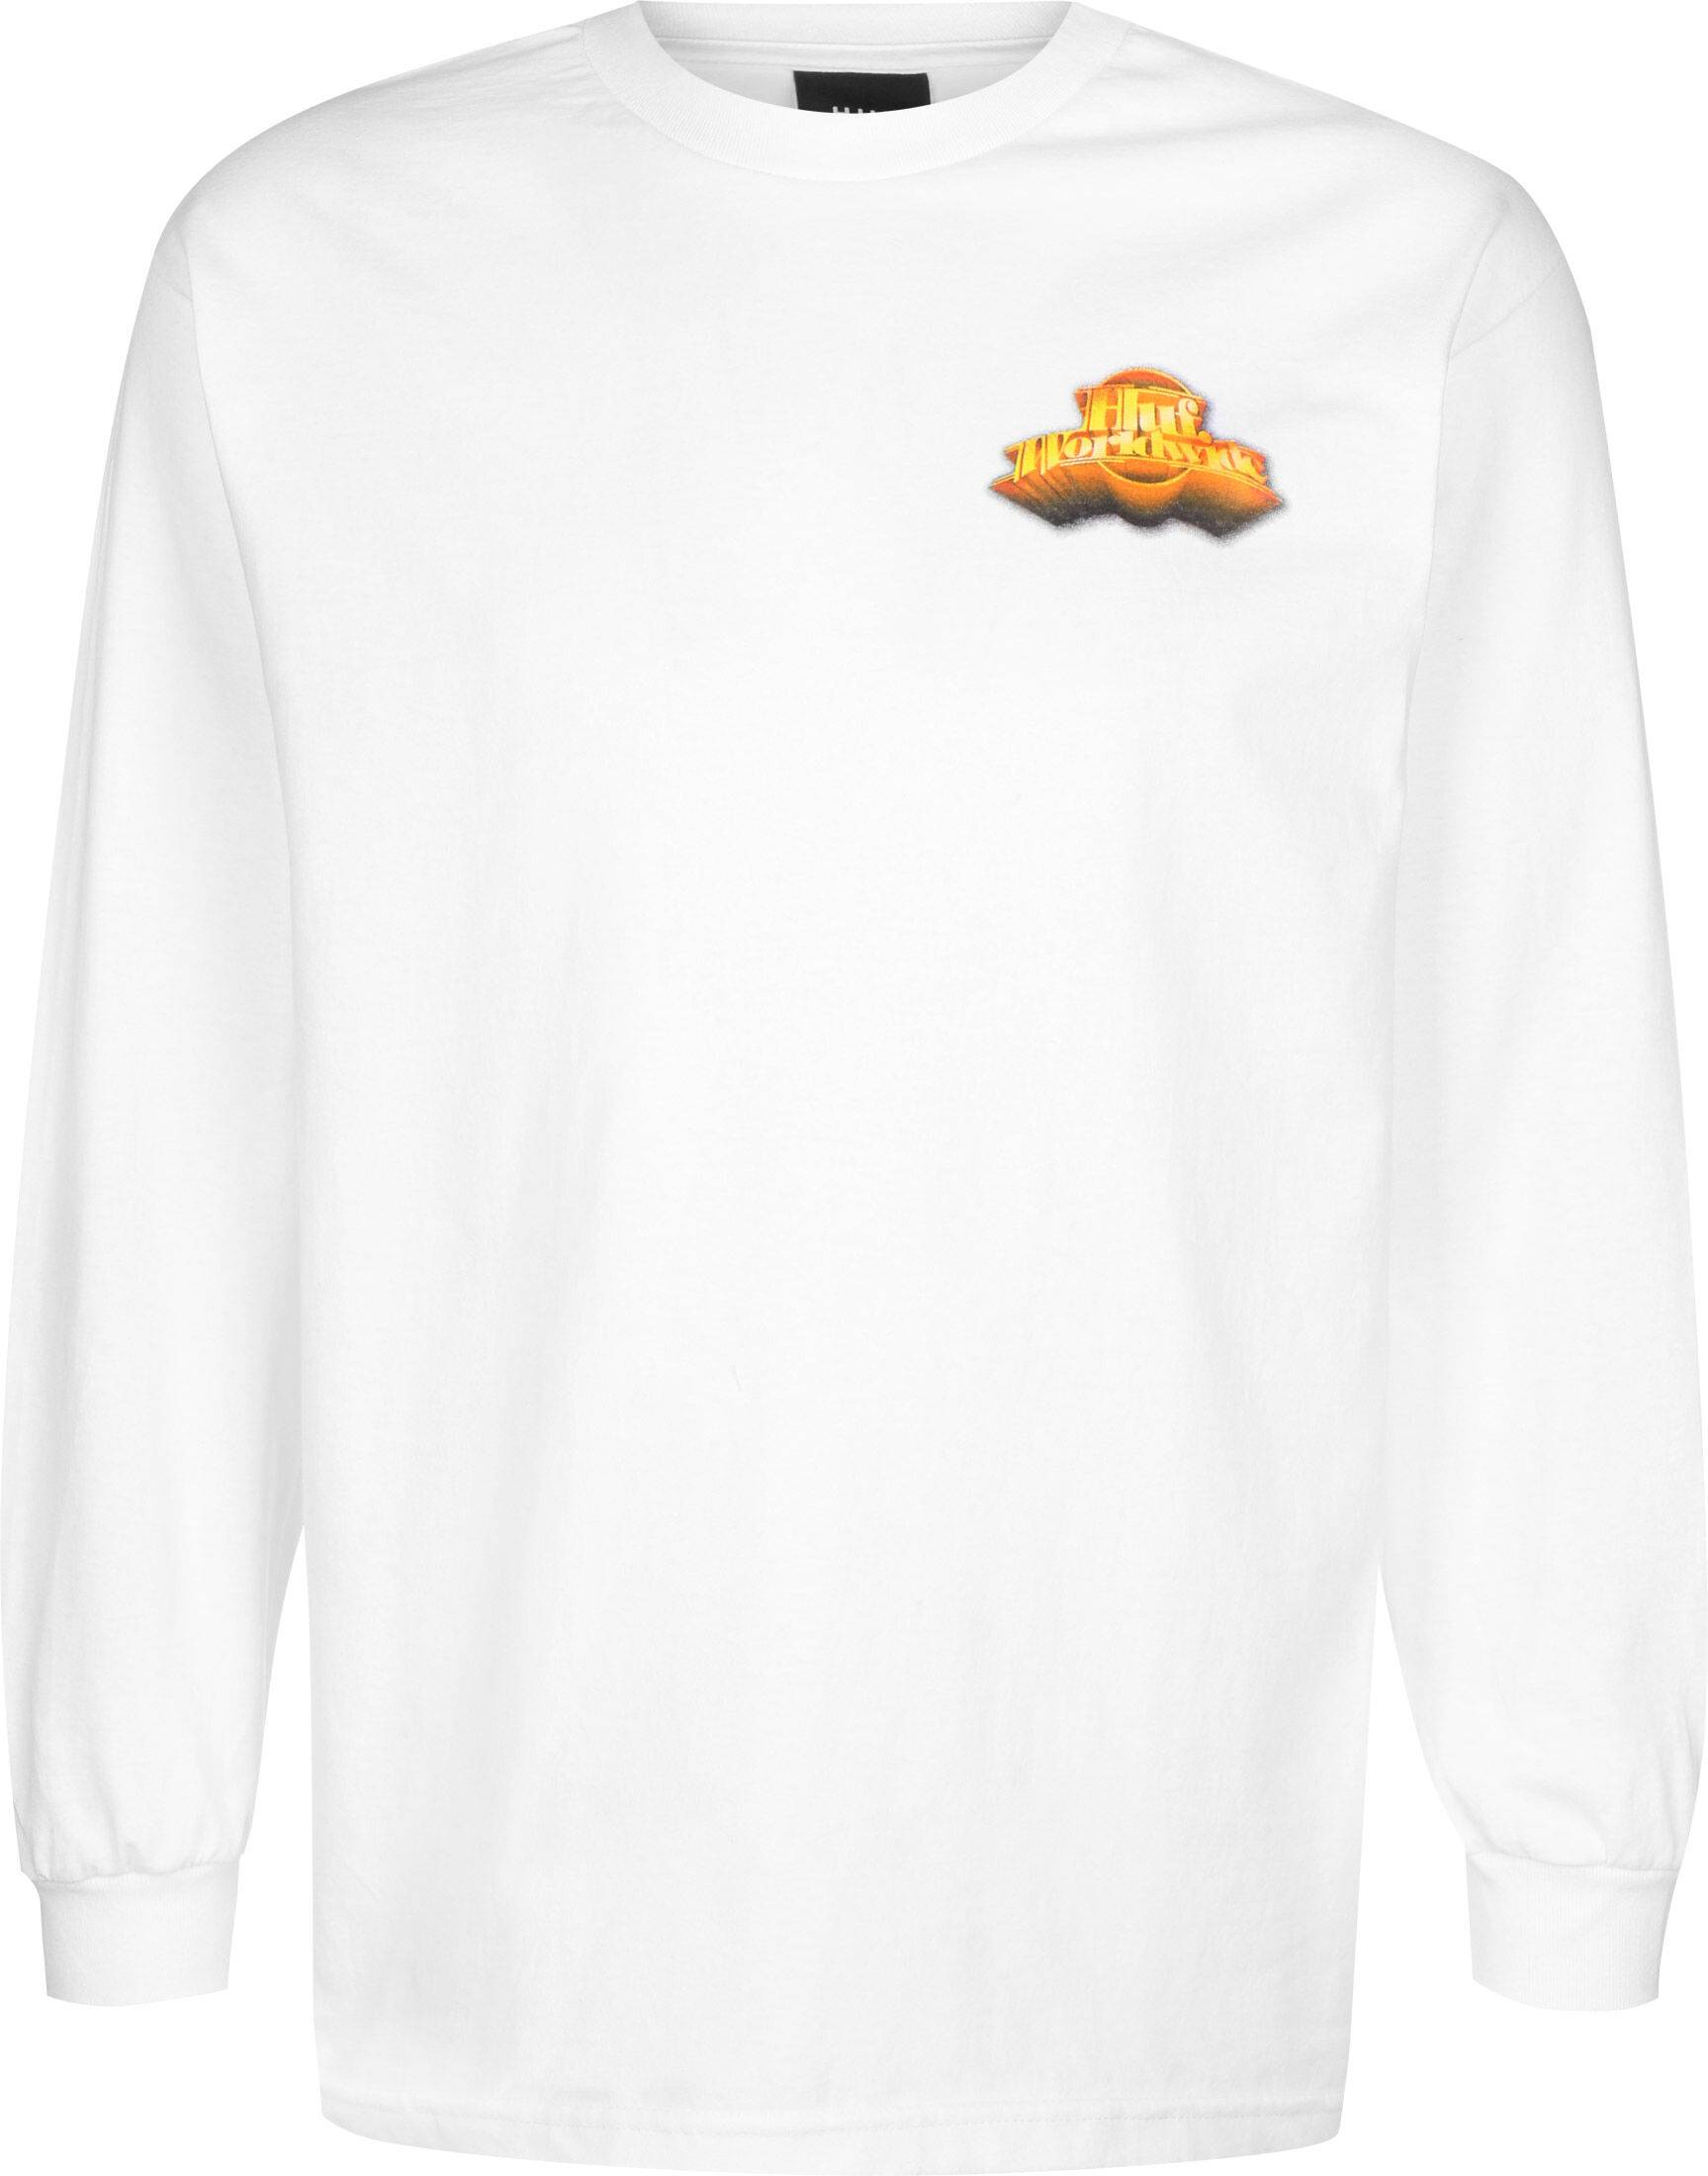 HUF Greatest Hits, taille M, homme, blanc